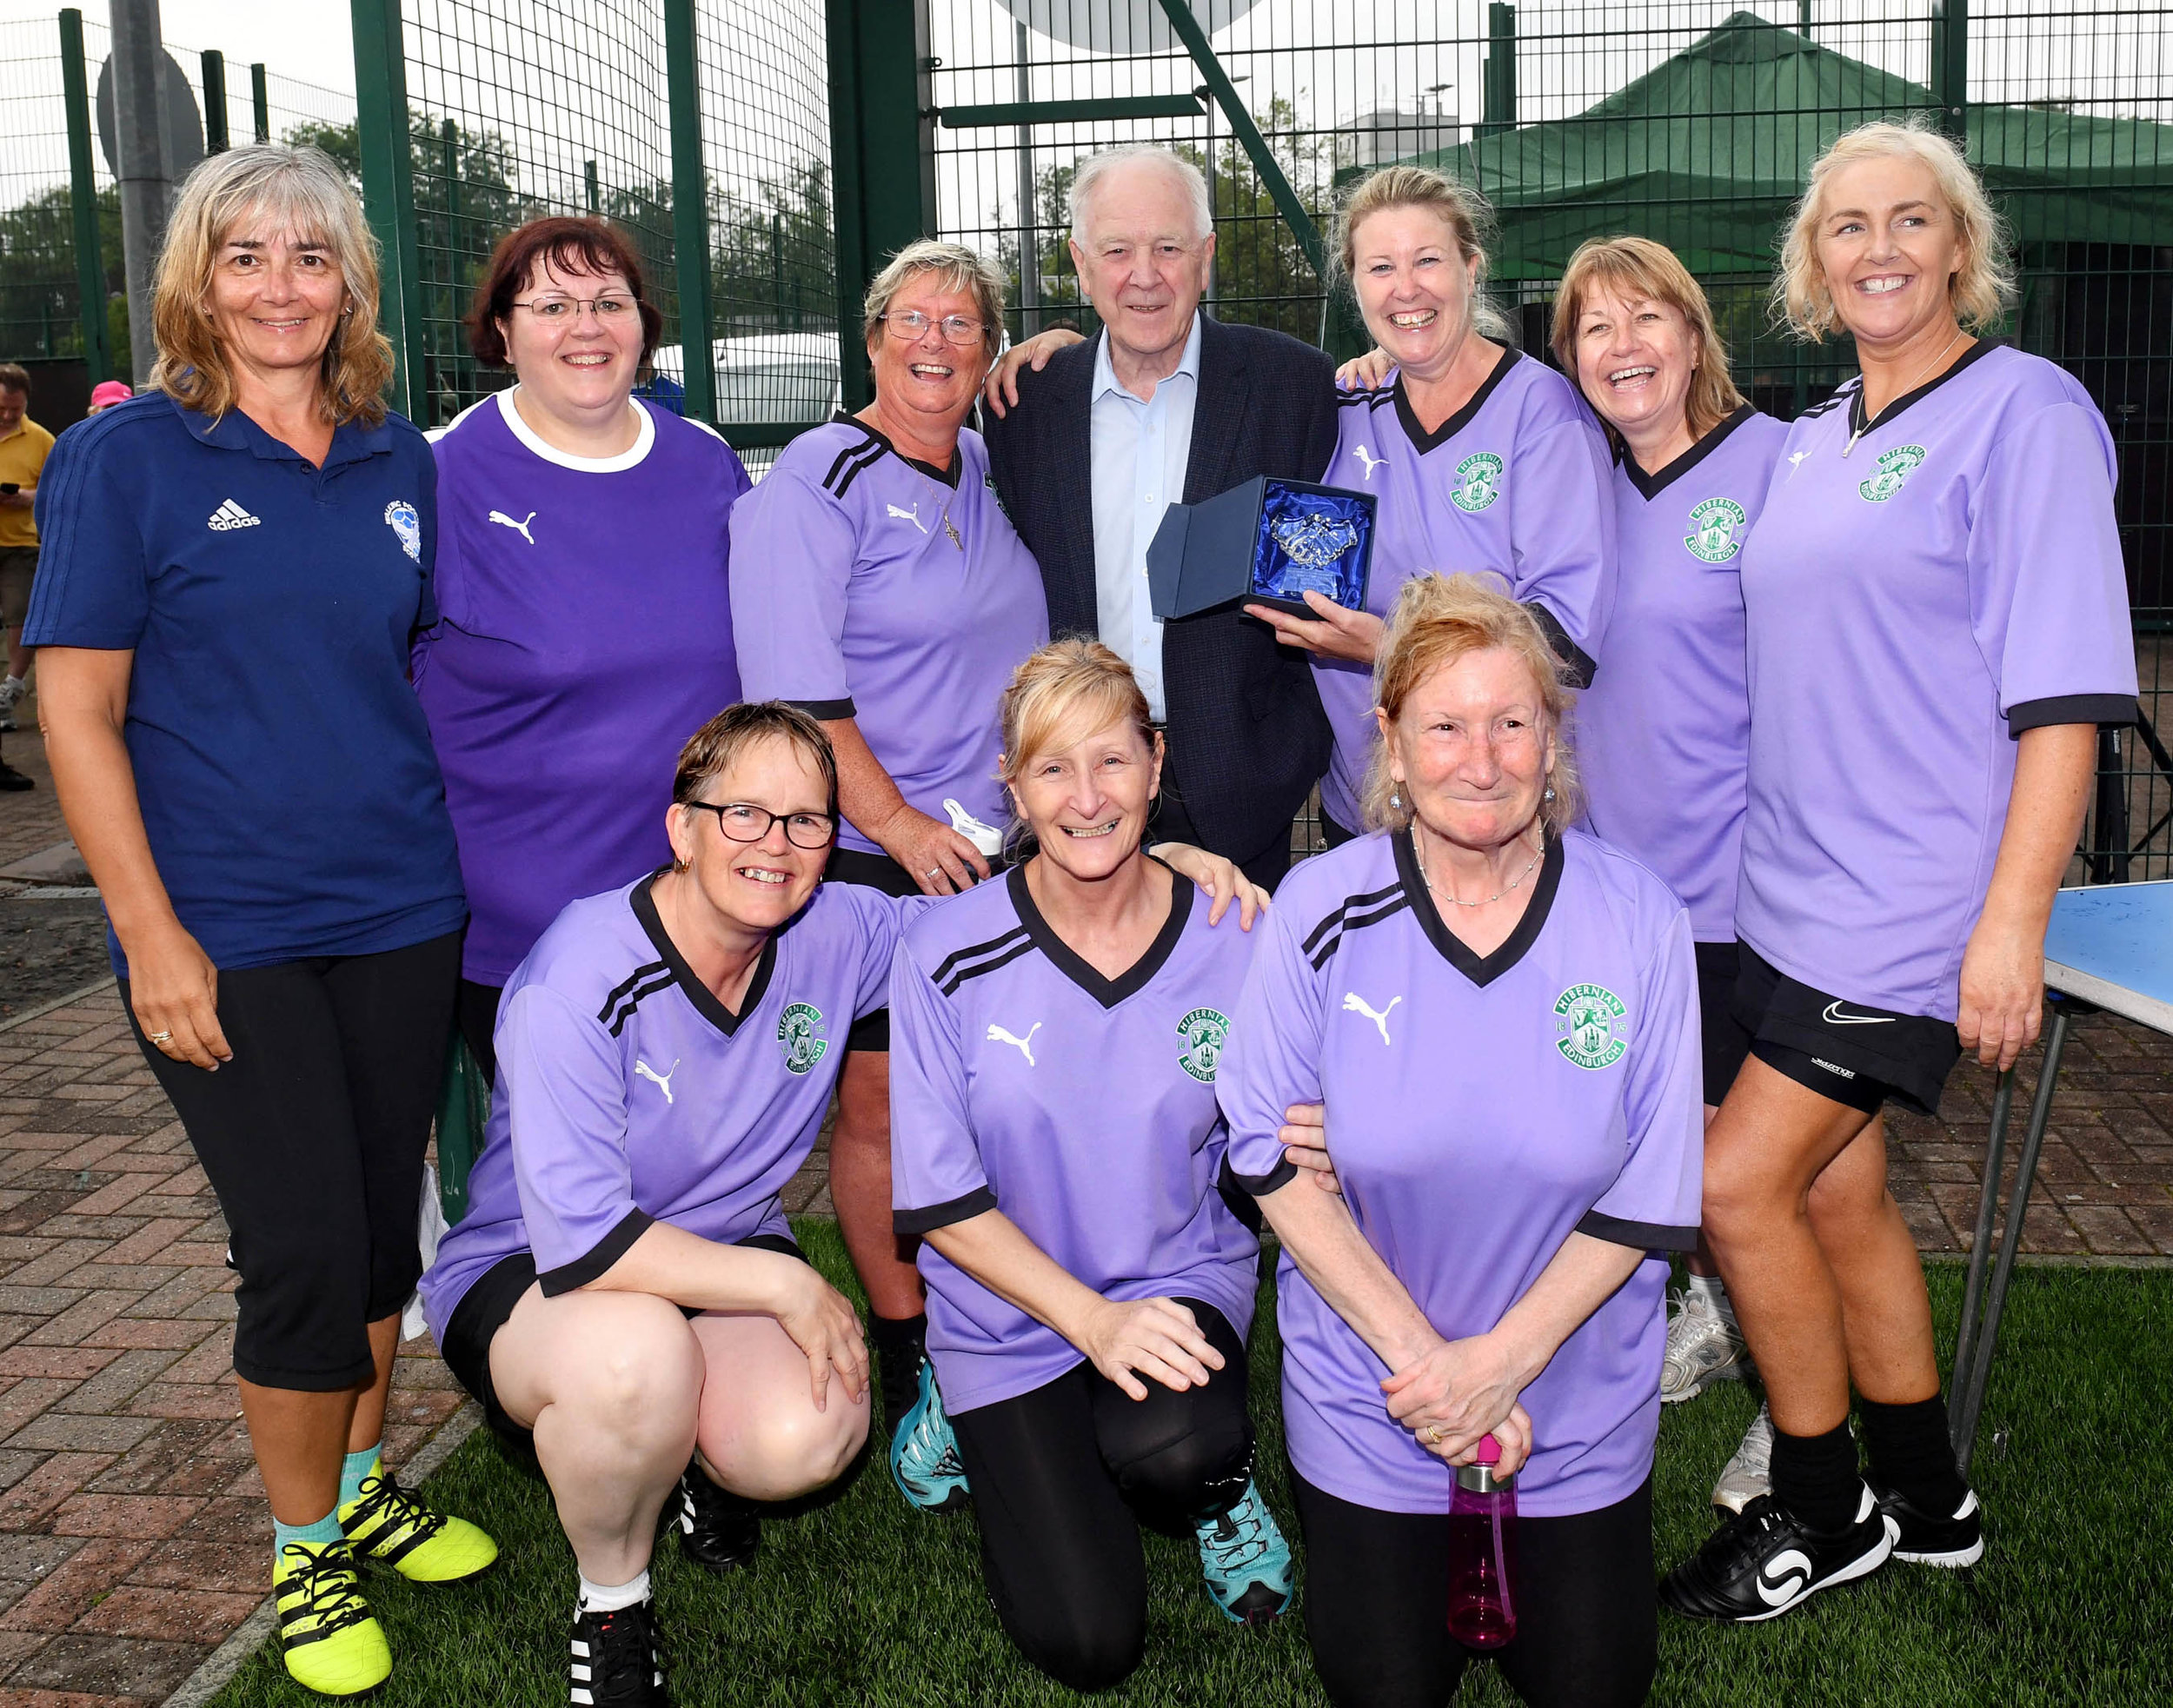 Midlothian Ladies winners of the Fair Play Award in the Festival with Craig Brown and WFS Trustee Vivian Wallace